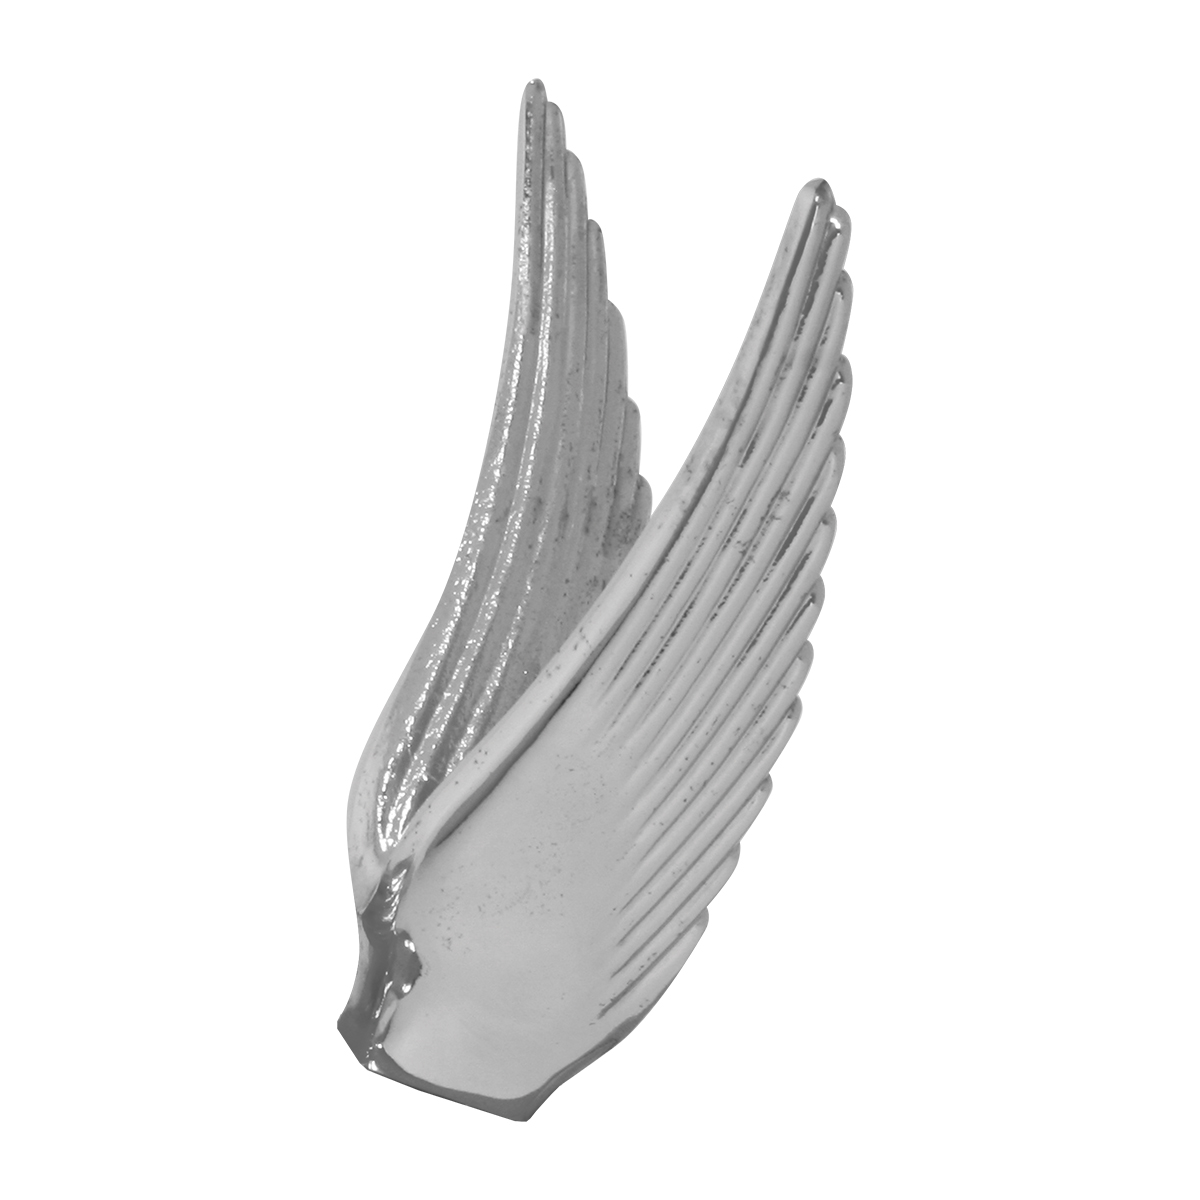 Wing hood ornament - Chrome Die Cast Flying Goddess Hood Ornament Wings Only Chrome Die Cast Flying Goddess Hood Ornament Wings Only